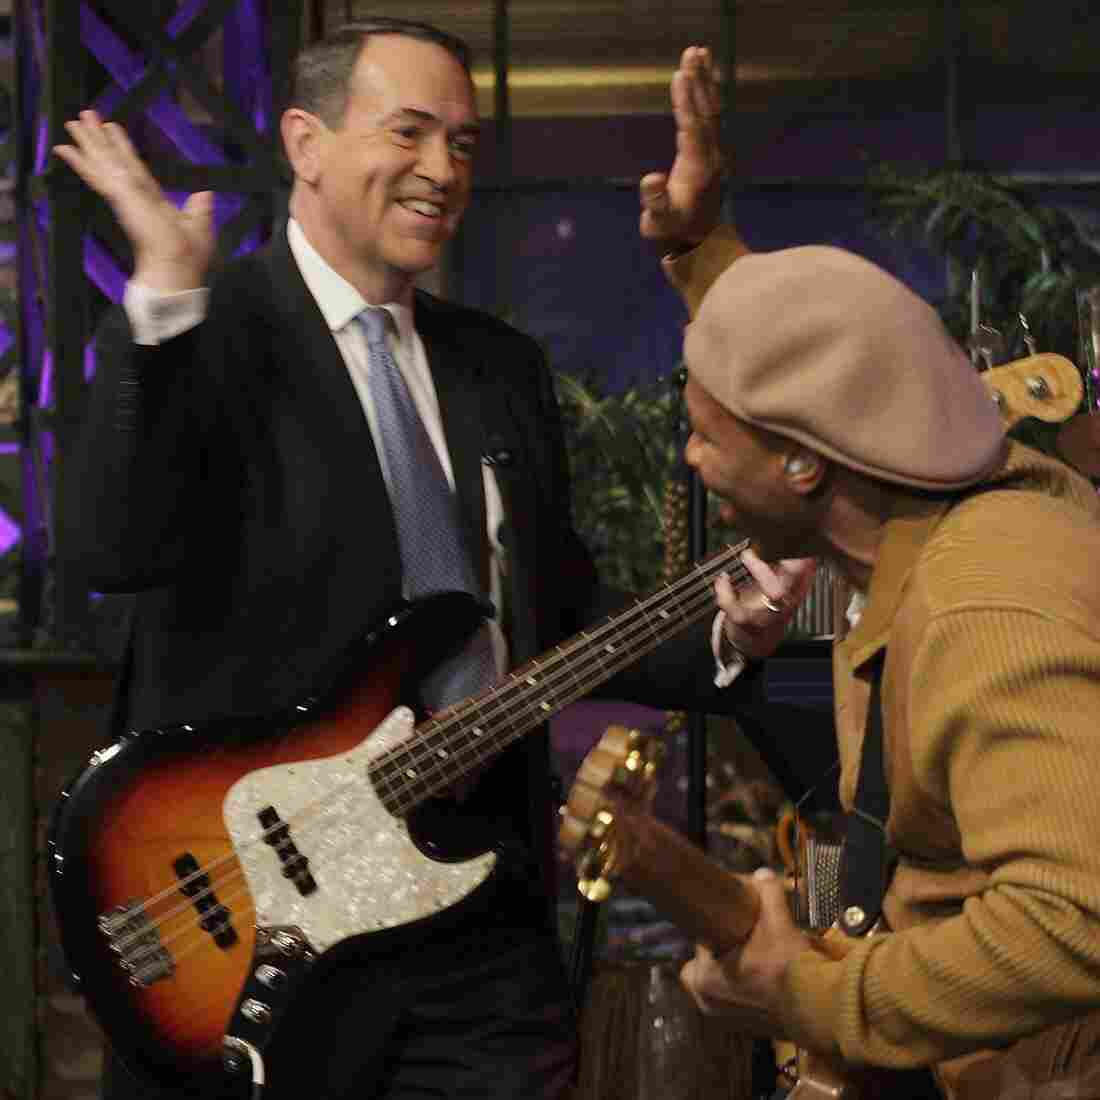 Mike Huckabee sits in on bass with the Tonight Show band in 2008.